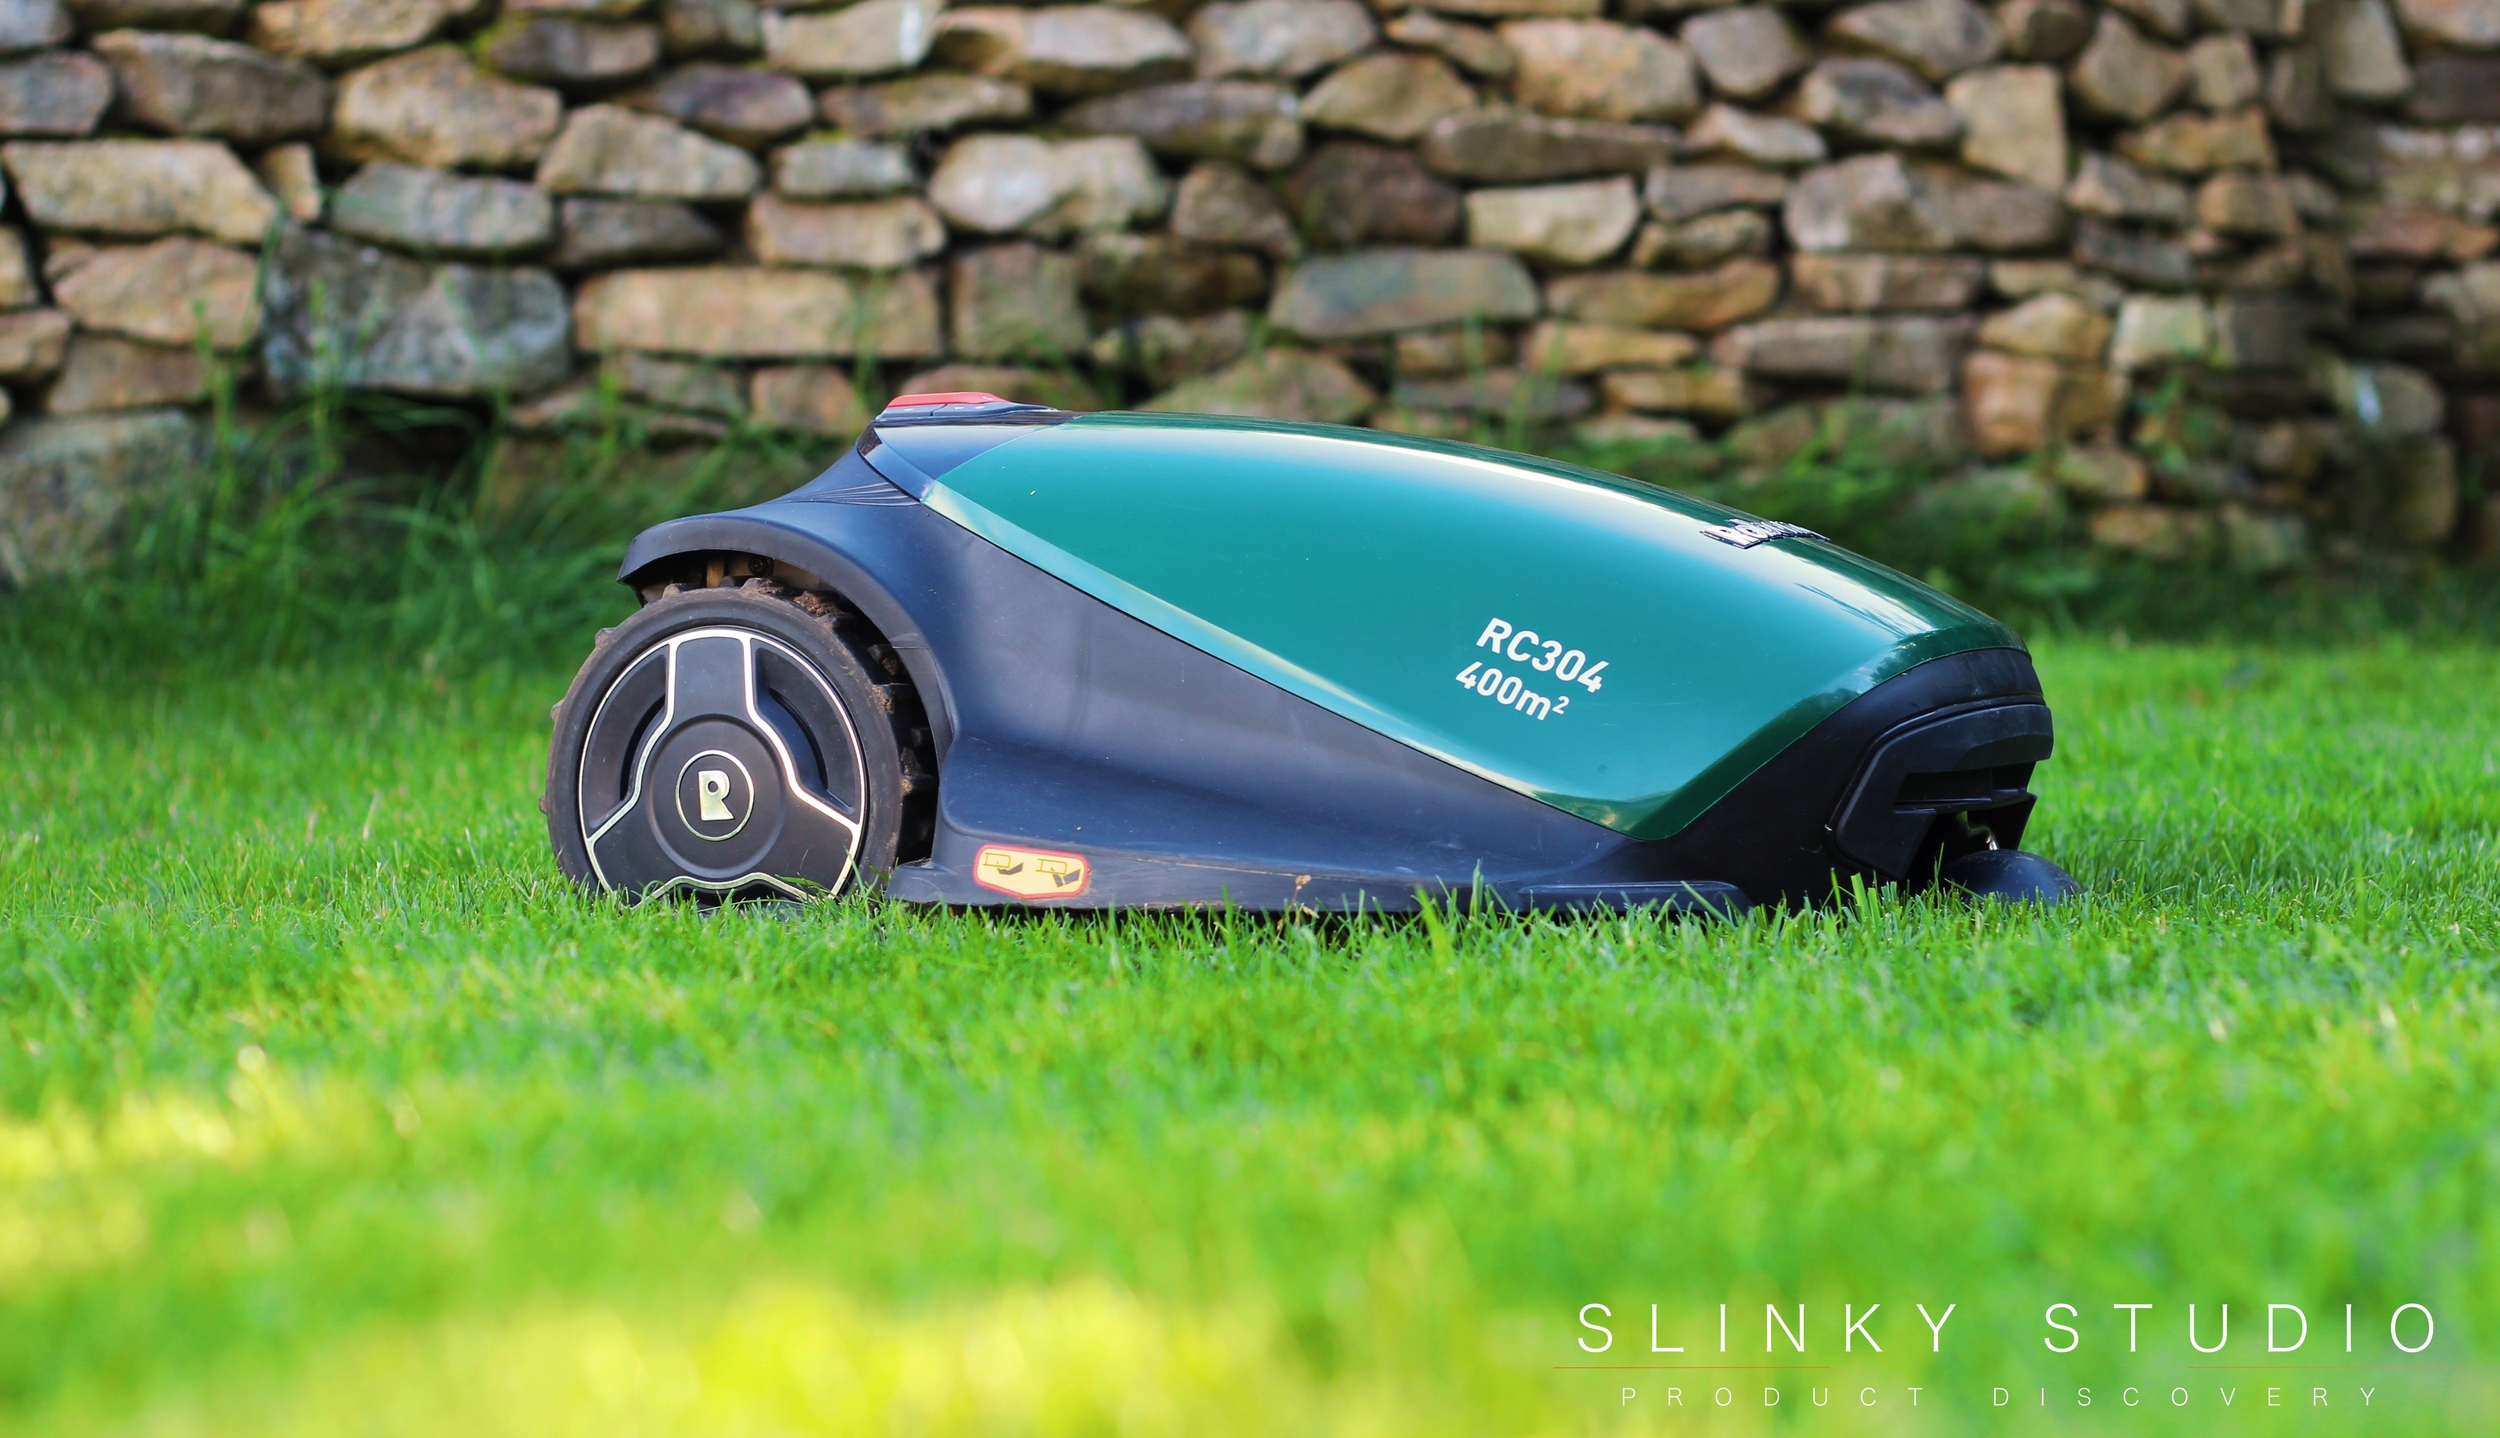 Robomow RC304 Robot Lawnmower Side View Cutting Lawn in Sun.jpg